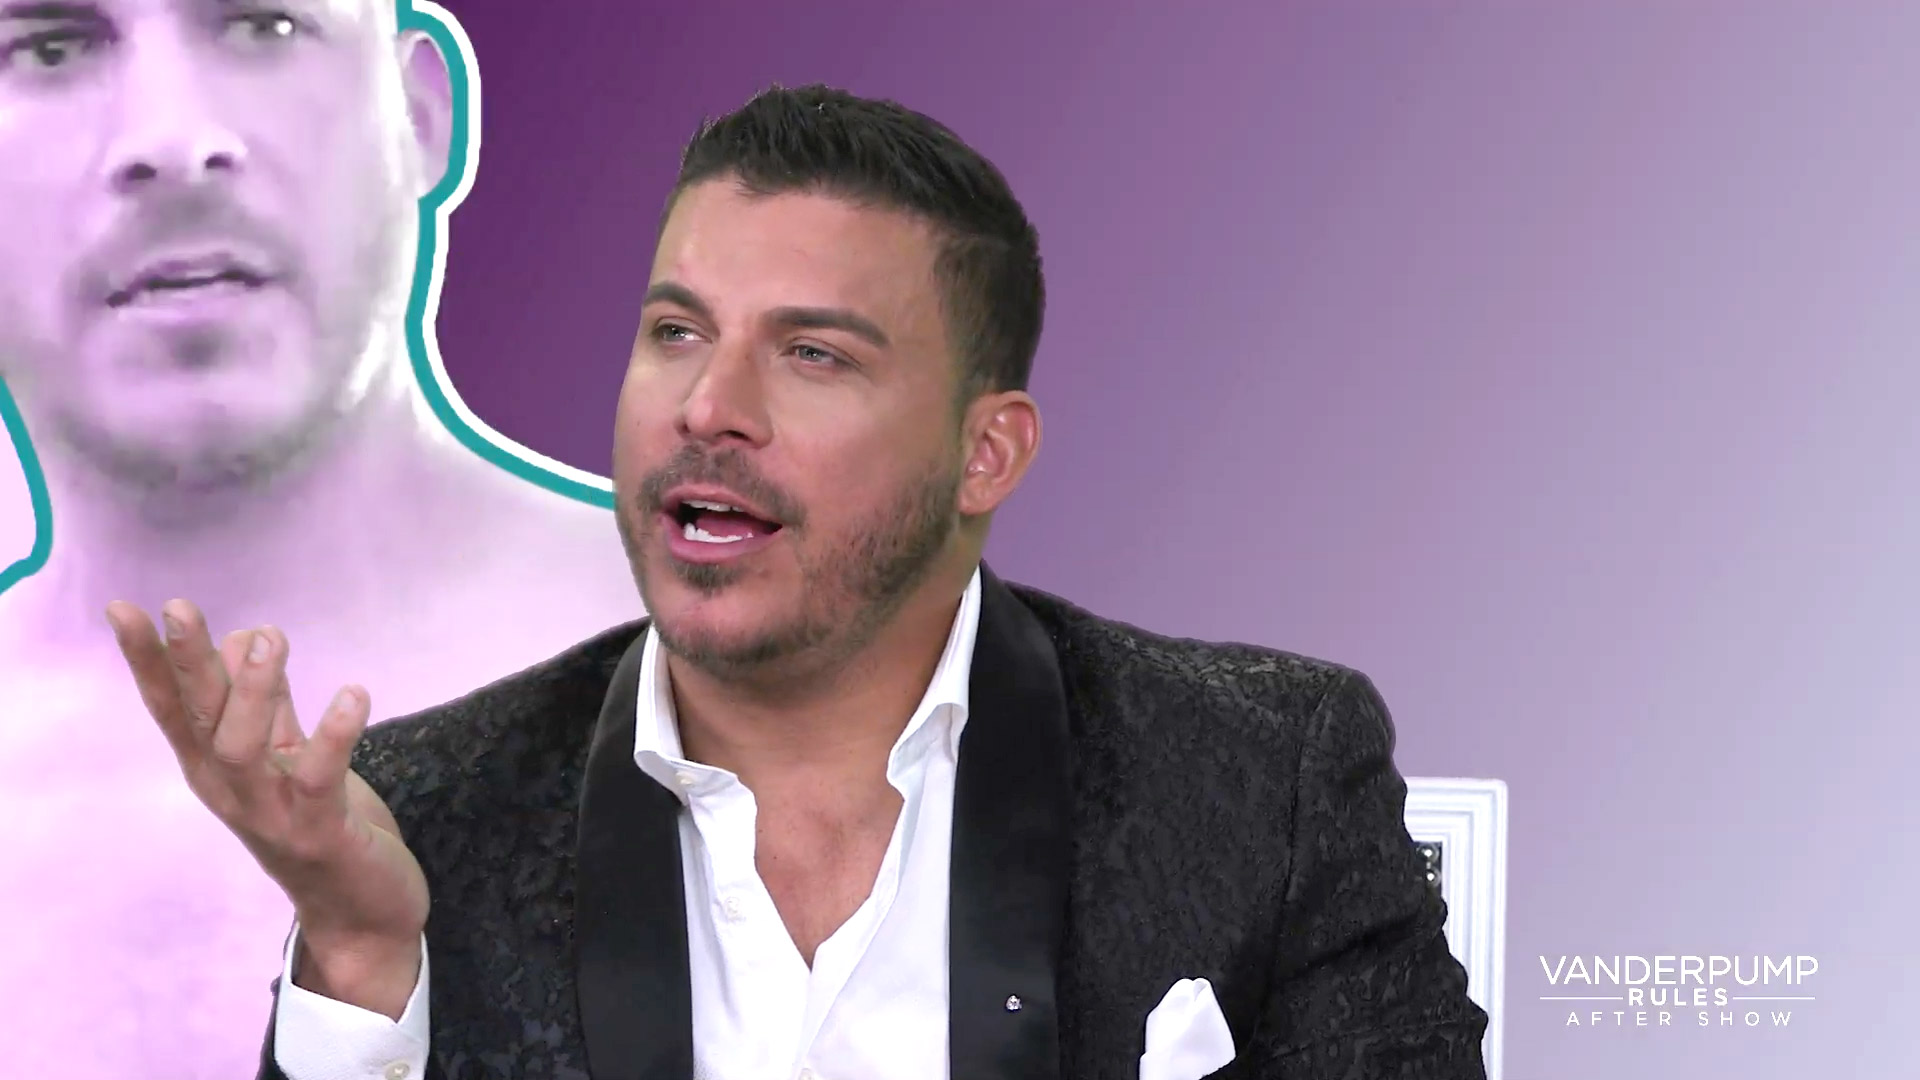 Jax Taylor on Nearly Drowning in Front of an Audience